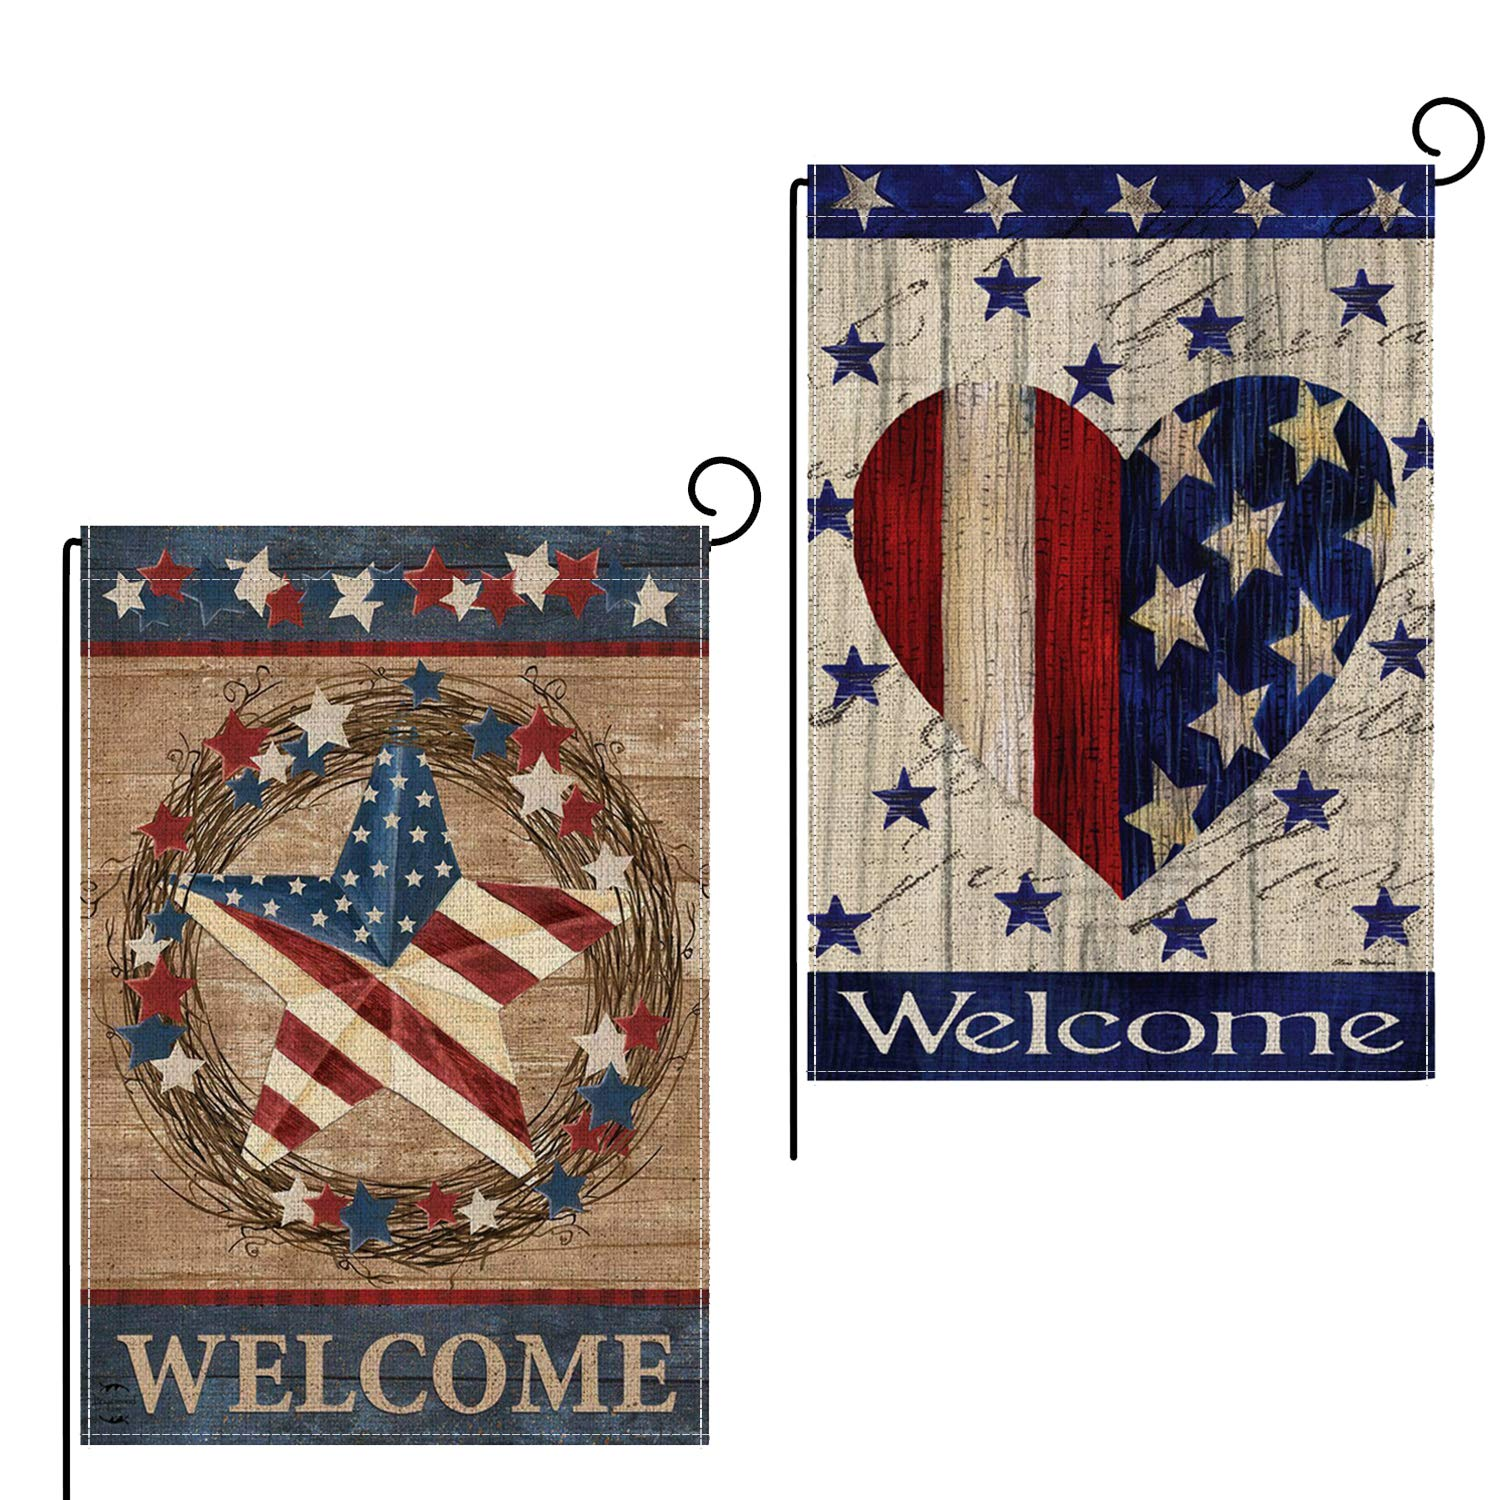 Rertcioph 2 Pack Home Decorative Garden Flags Double Sided, Burlap Welcome Quotes House Yard Decoration, America Patriotic Rustic Seasonal Outdoor Yard Flags 12.5 x 18 Inch